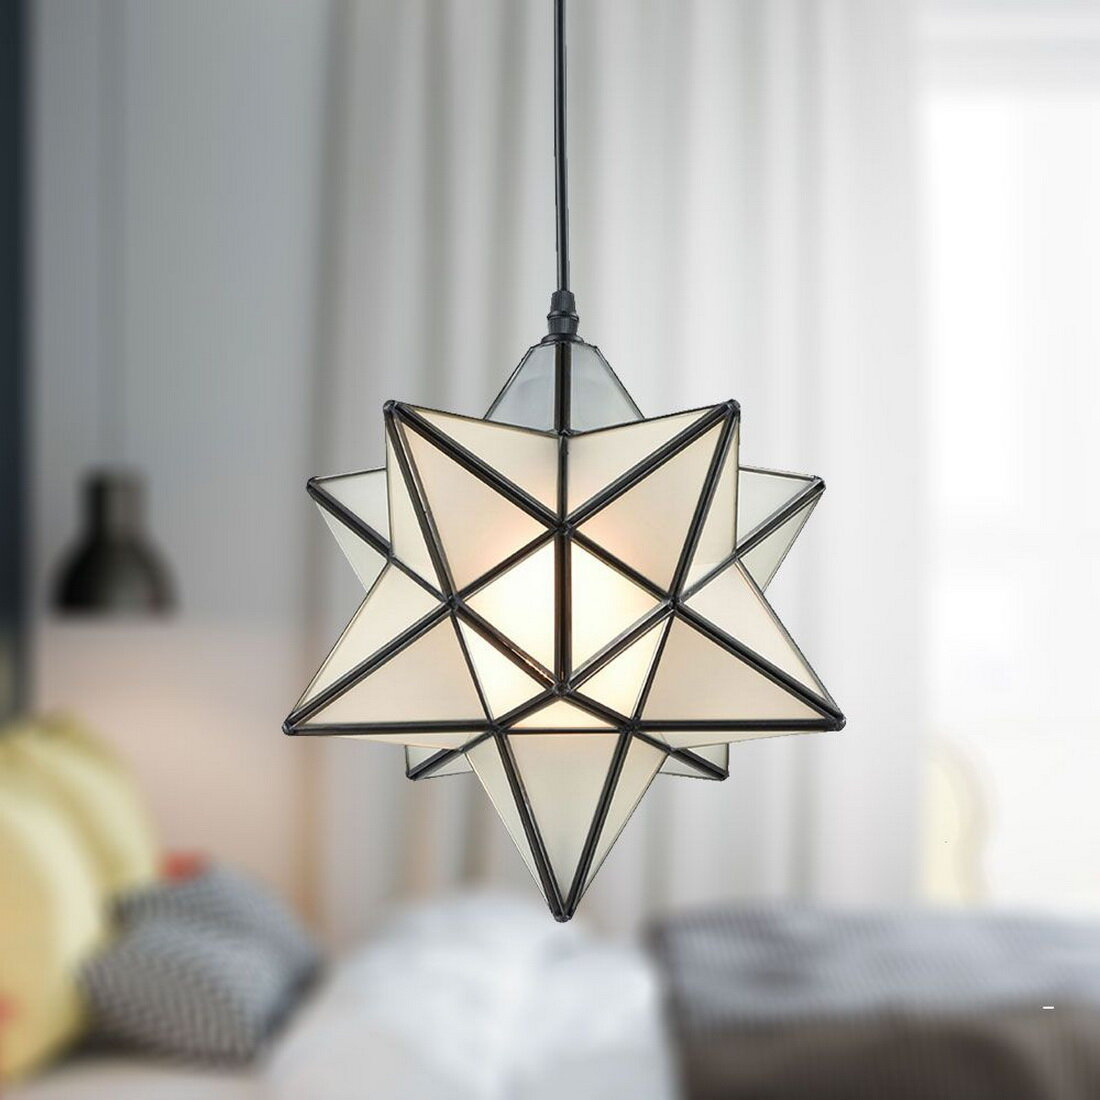 Denzel 1 Light Single Star Pendant Regarding 1 Light Single Star Pendants (View 9 of 30)